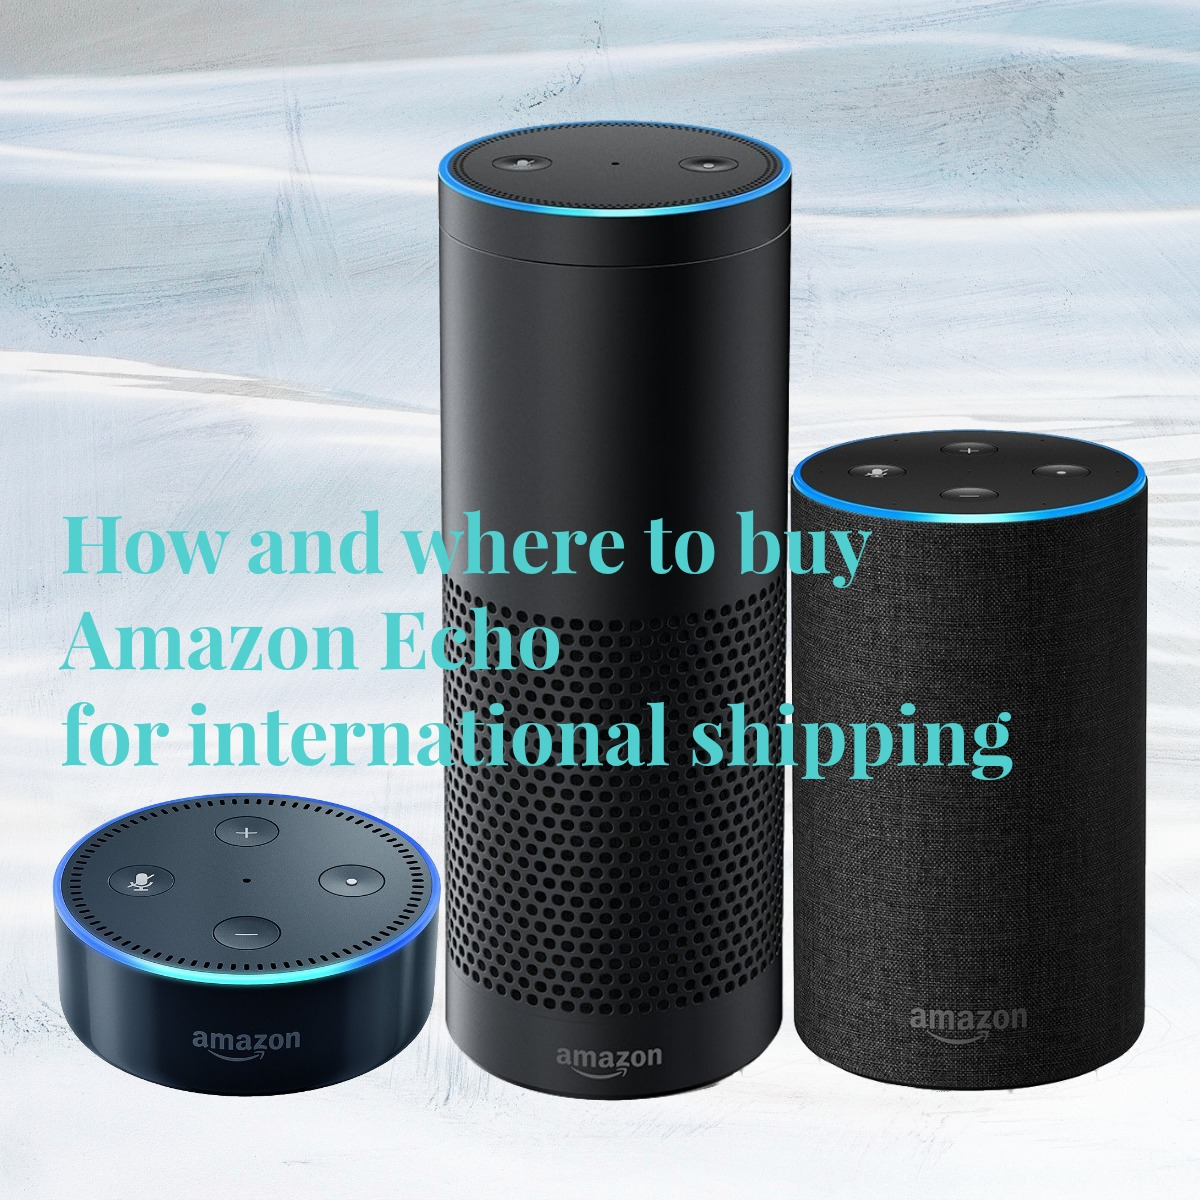 How and where to buy Amazon Echo for international shipping